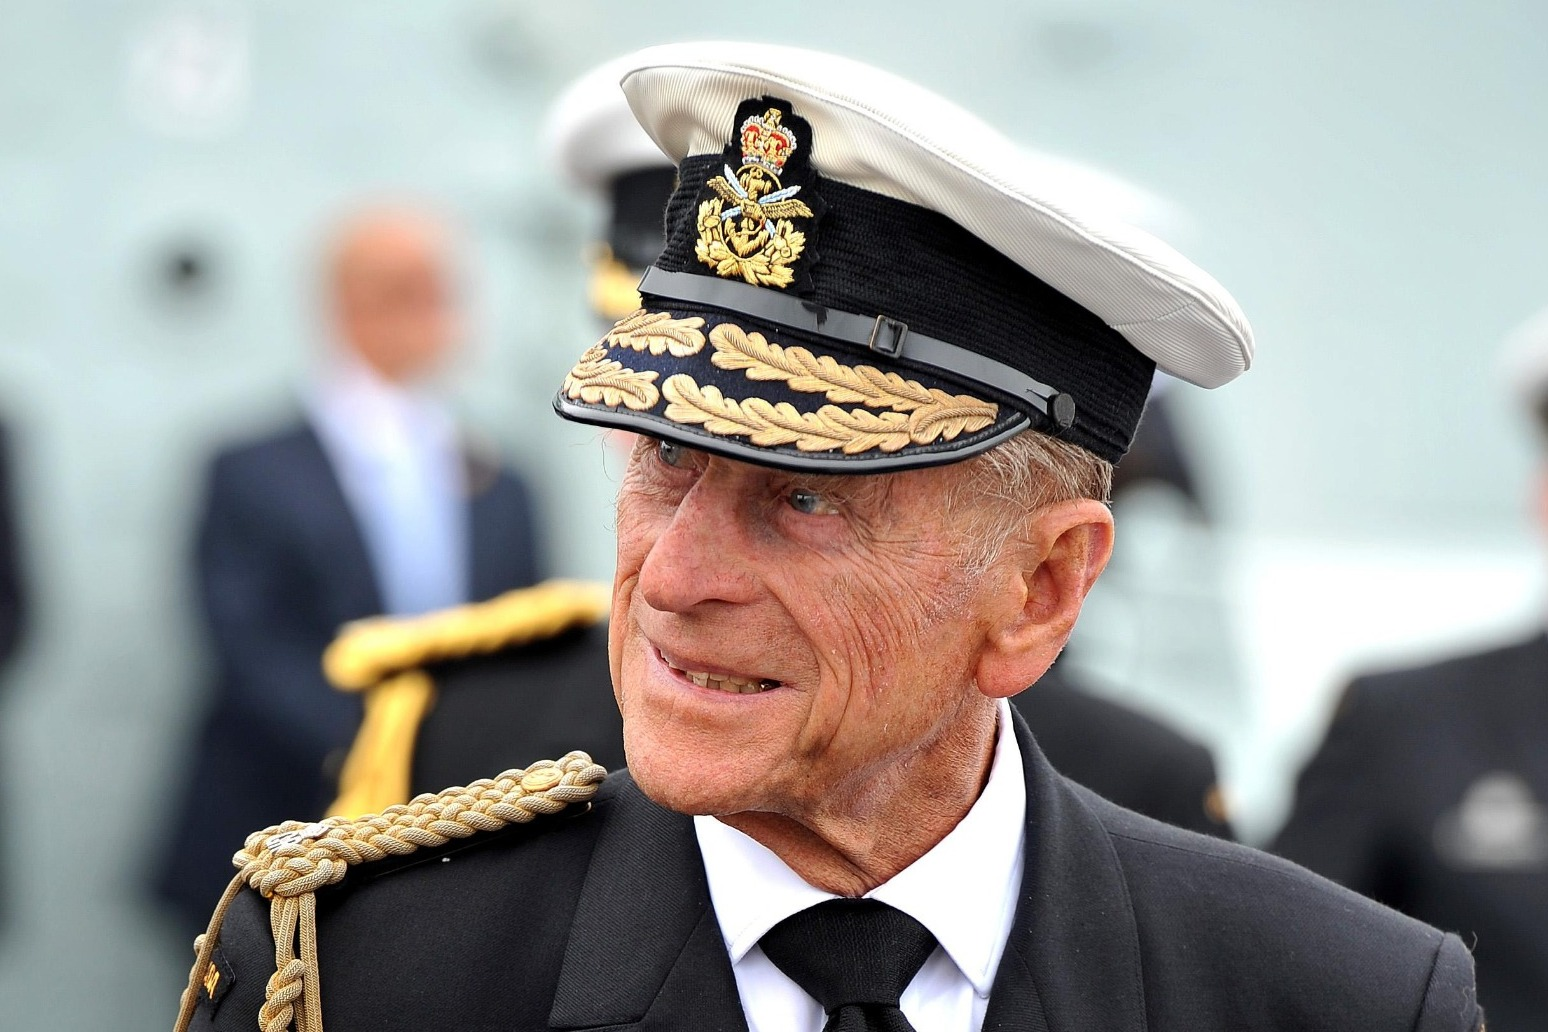 Royals lucky to have had Duke of Edinburgh for nearly 100 years thumbnail